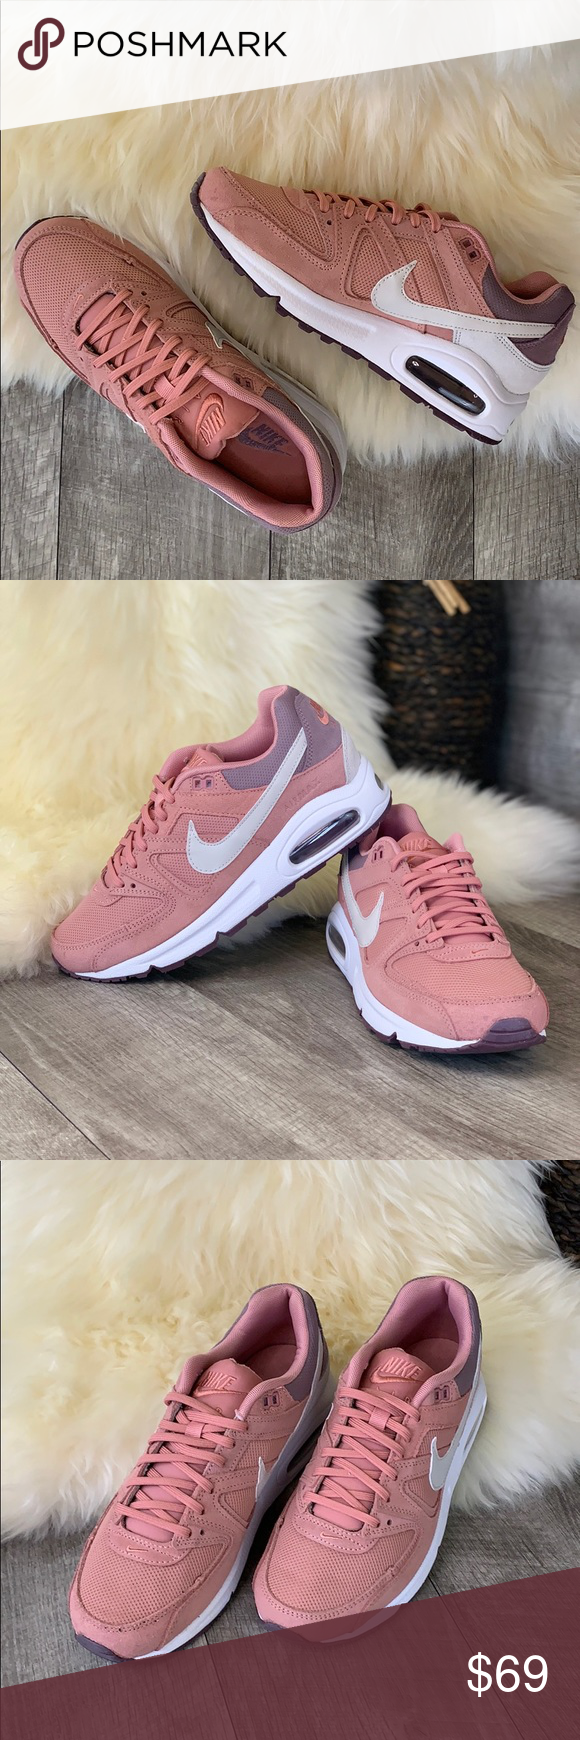 Nike Air Max Command Red StardustLight bone s 8 New with